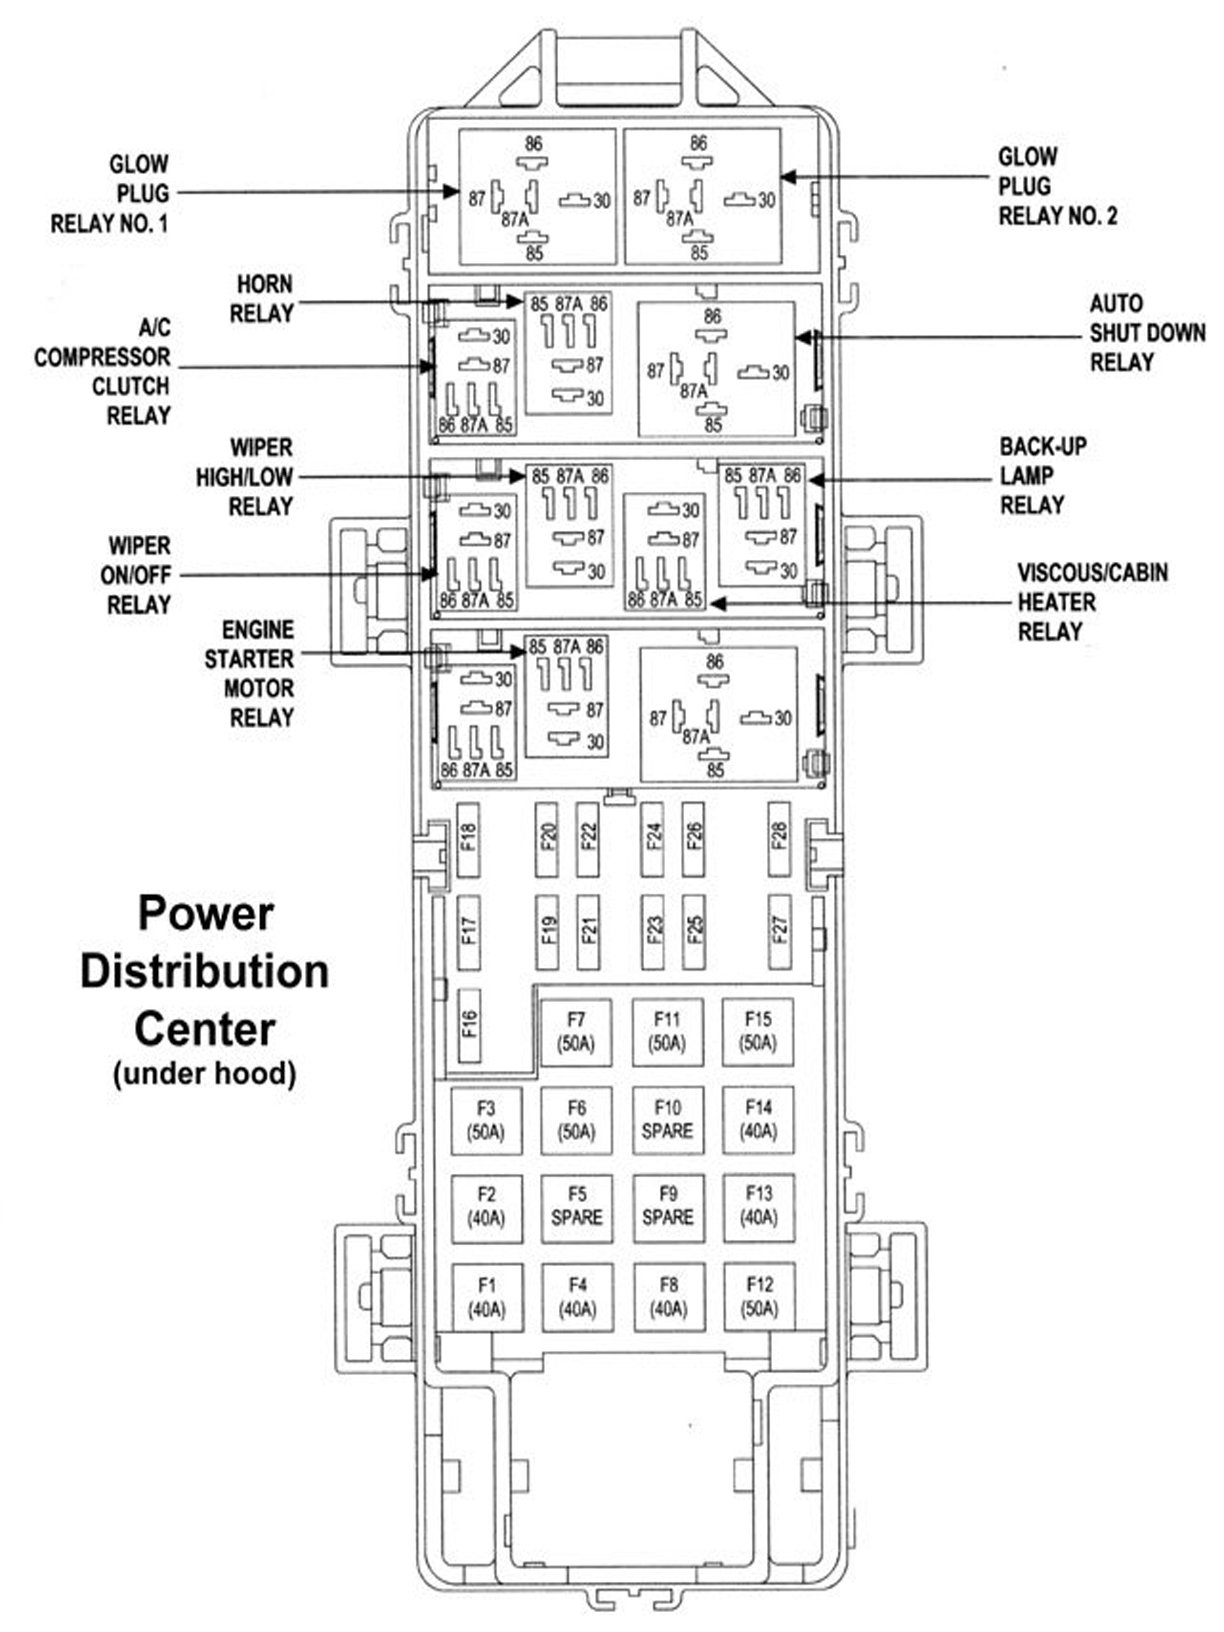 [DIAGRAM_3NM]  F5946C 2003 Jeep Grand Cherokee Fuse Box | Wiring Library | 2004 Jeep Grand Cherokee Fuse Panel Diagram |  | Wiring Library